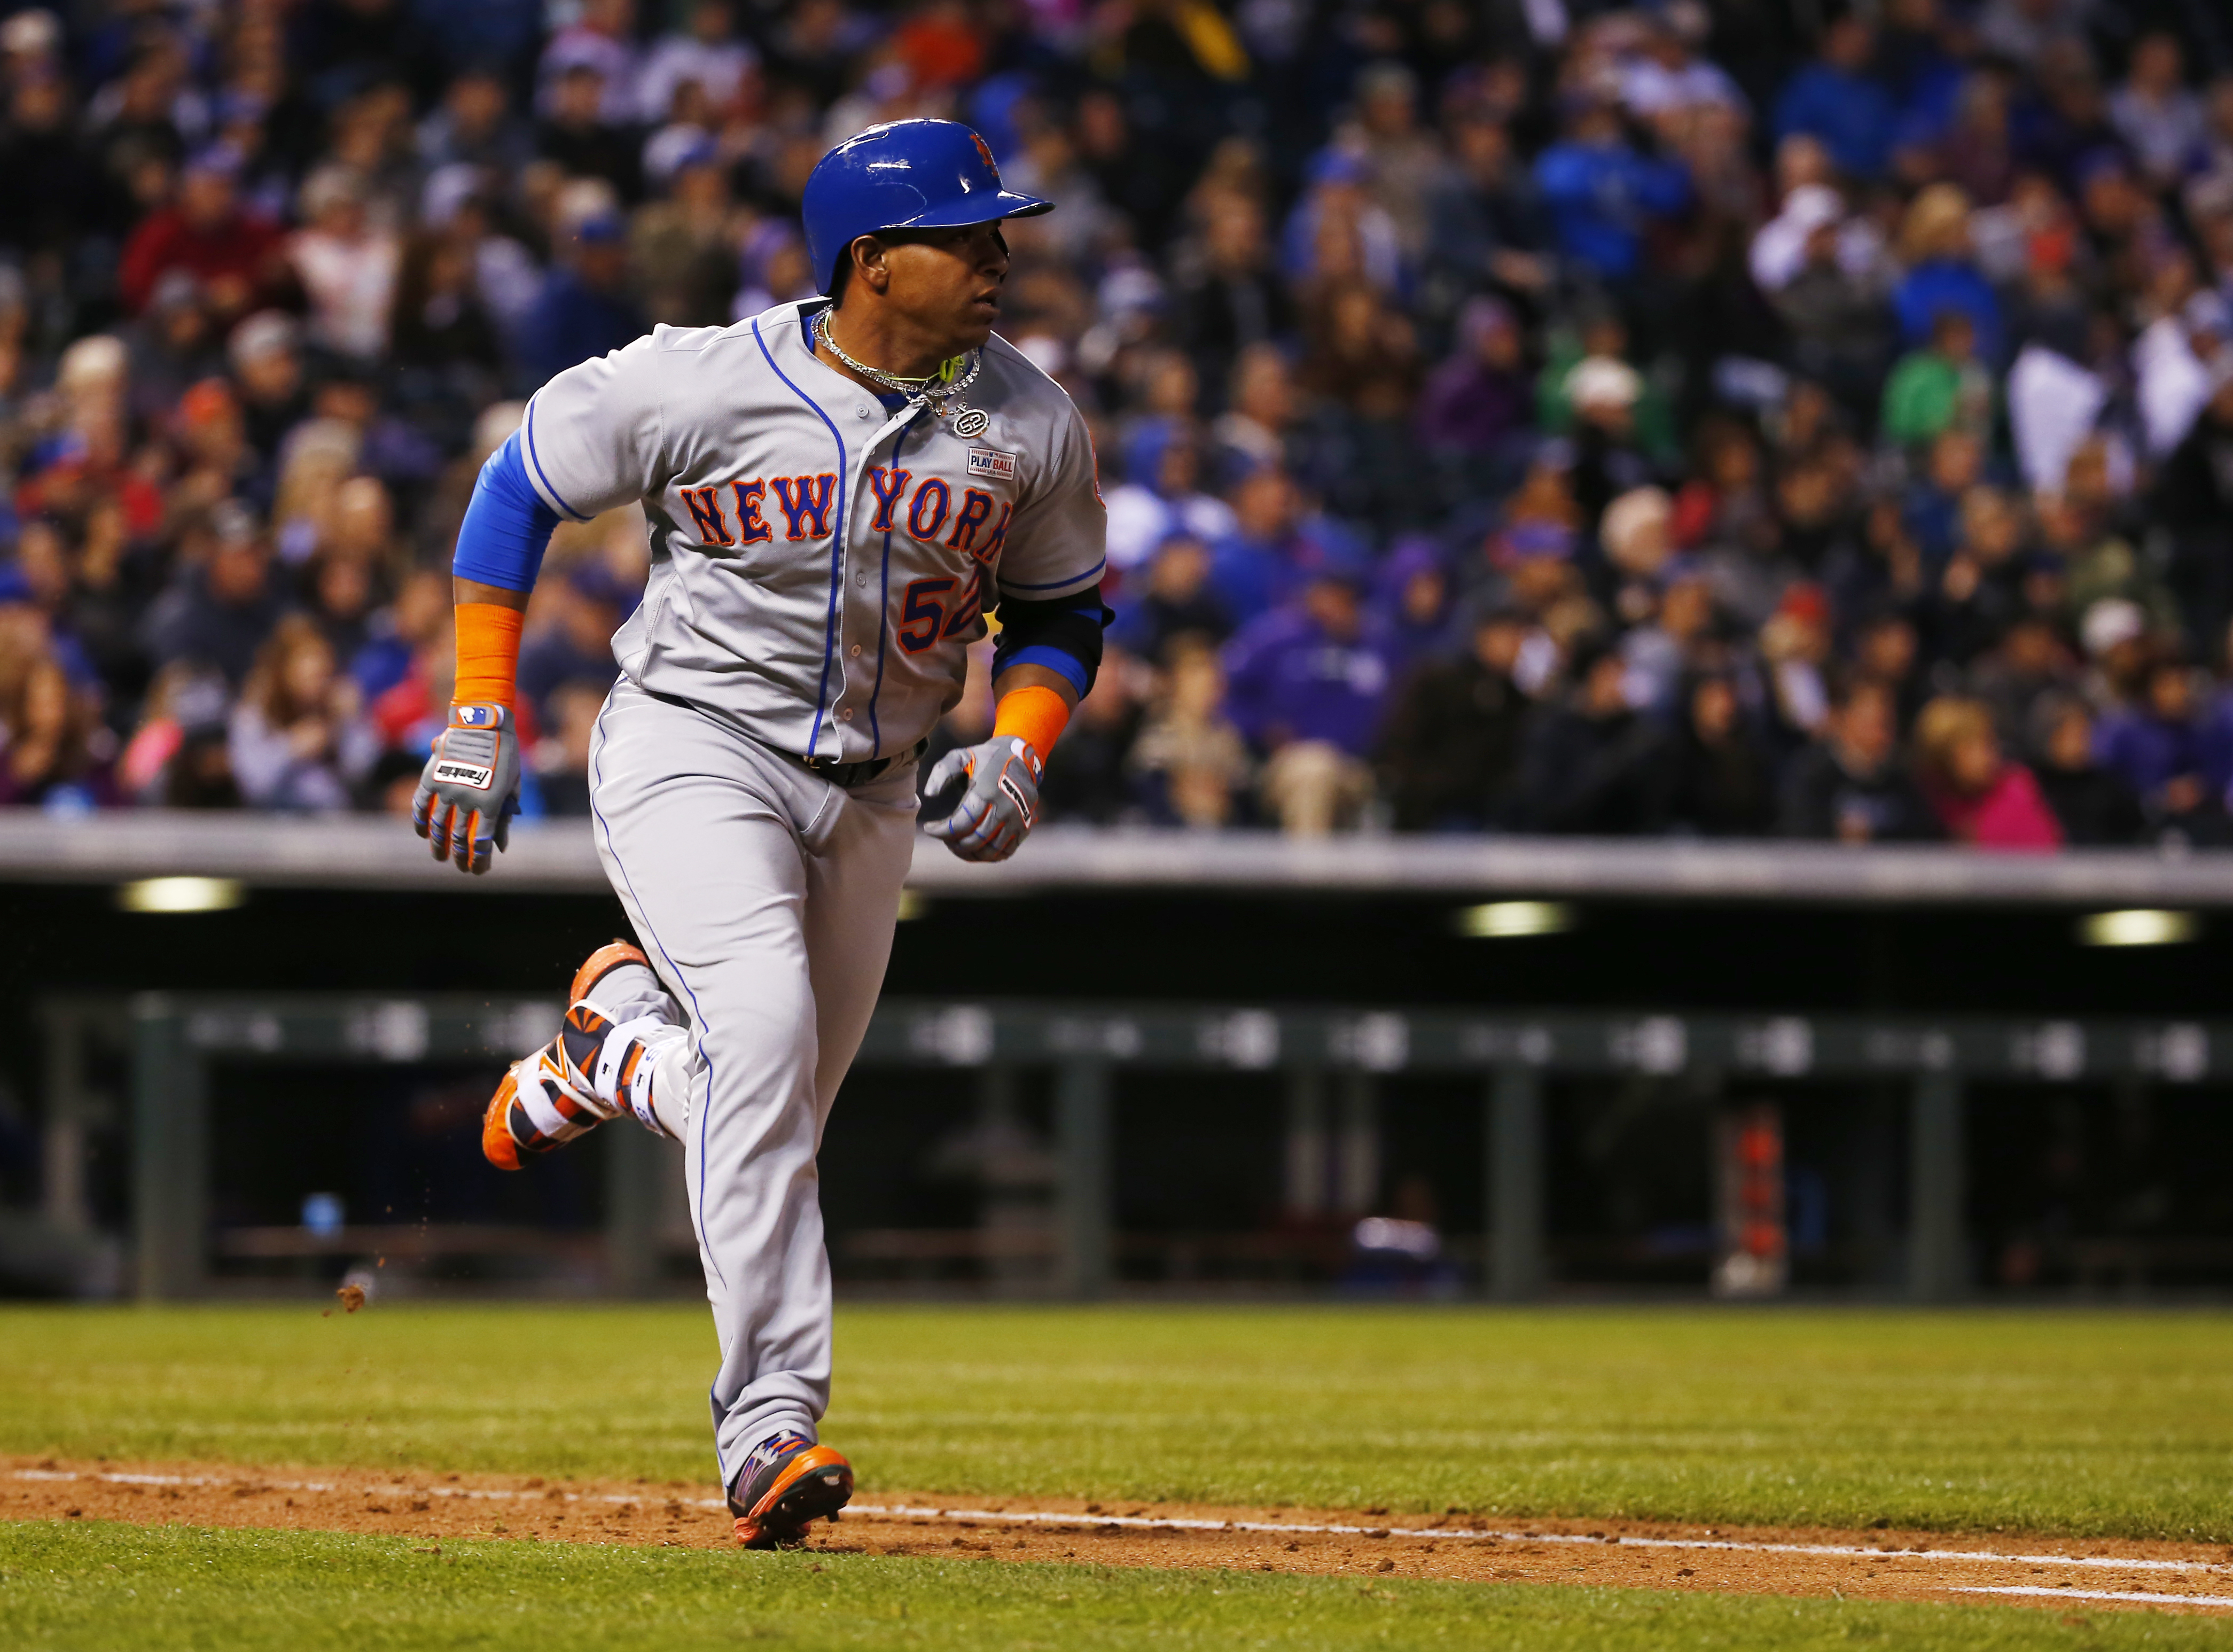 New York Mets' Yoenis Cespedes runs to first after hitting a triple off Colorado Rockies starting pitcher Eddie Butler during the sixth inning of a baseball game Saturday, May 14, 2016, in Denver. (AP Photo/Jack Dempsey)